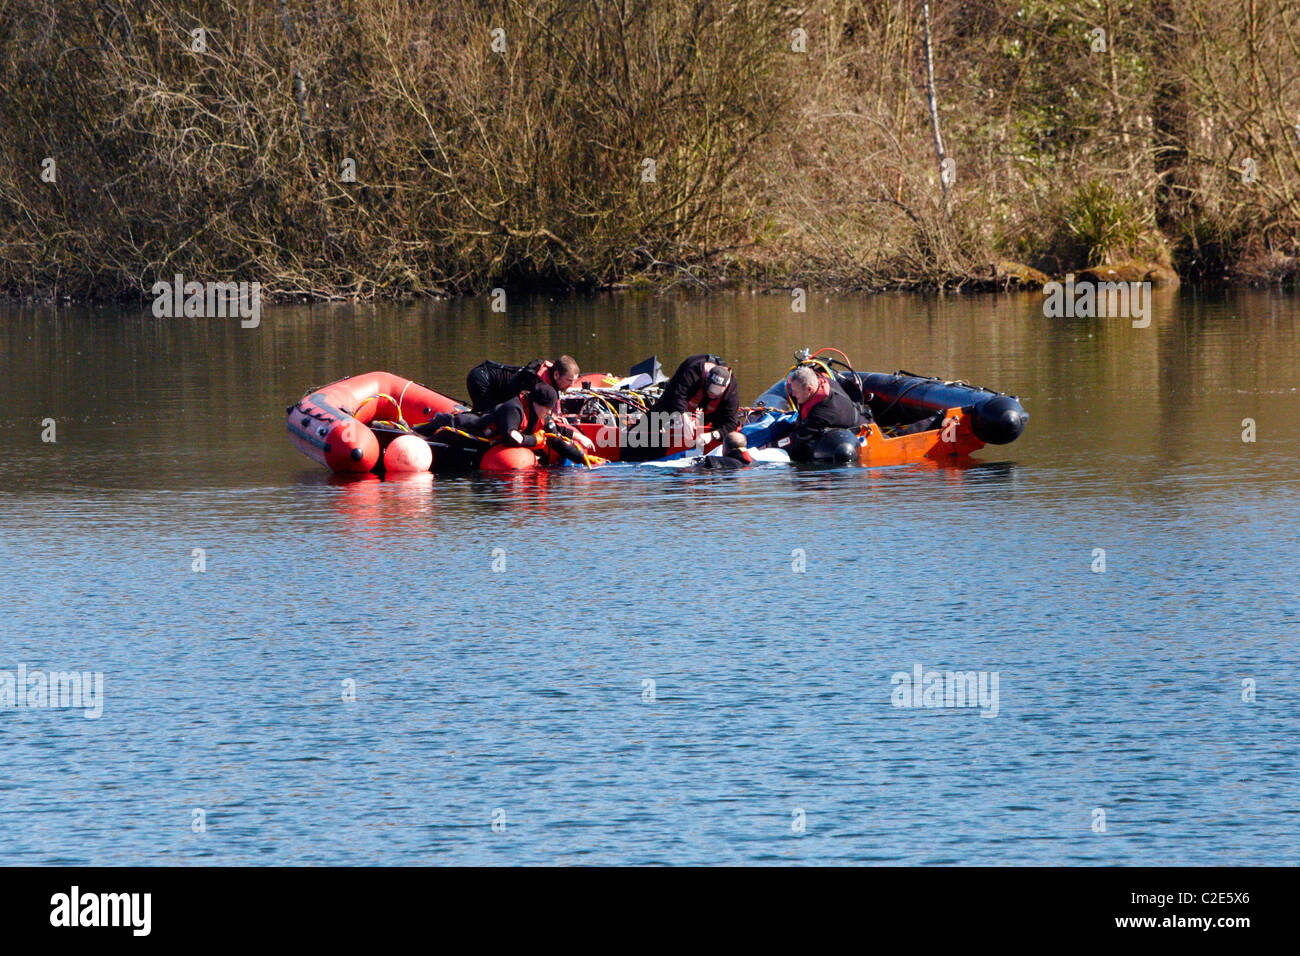 Divers recover a body, thought to be Alfie Skelton from Heathfield Pond in Cobham, Surrey. - Stock Image